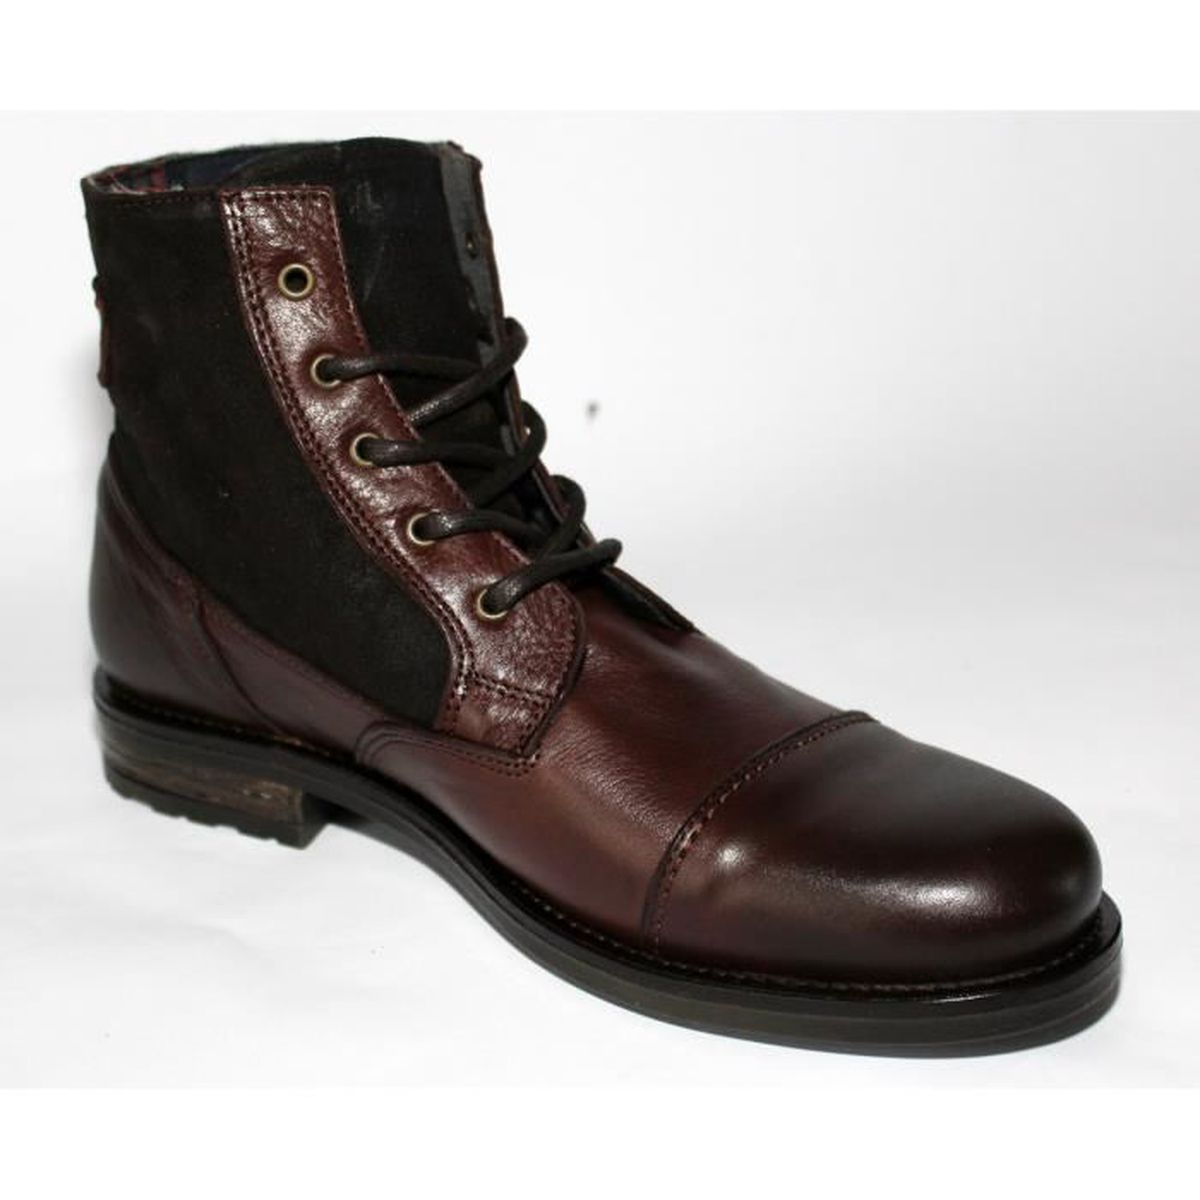 BOTTES CUIR CHAUSSURES MODE Homme T 44 NEUVES DCoo64Hlr